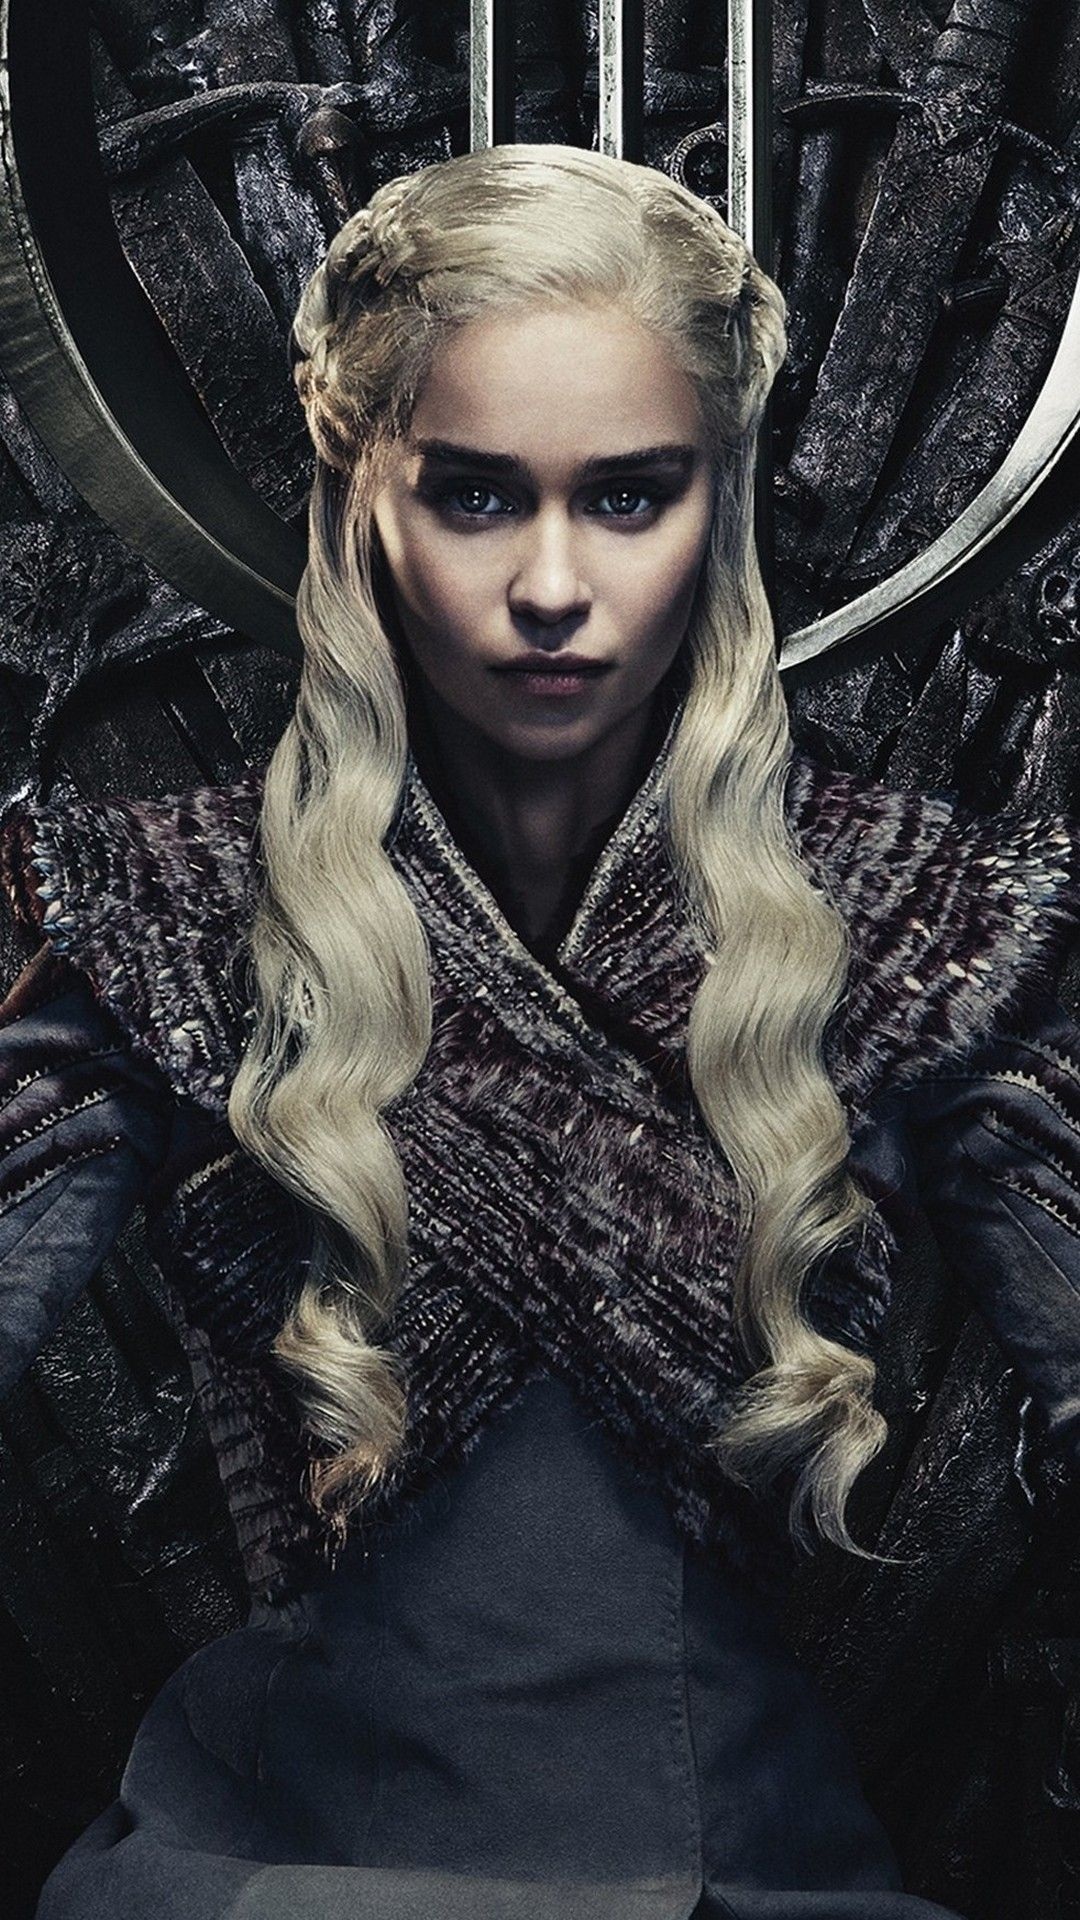 Game Of Thrones 8 Season Wallpaper For Iphone Best Iphone Wallpaper Game Of Thrones Artwork Iphone Wallpaper Mother Of Dragons